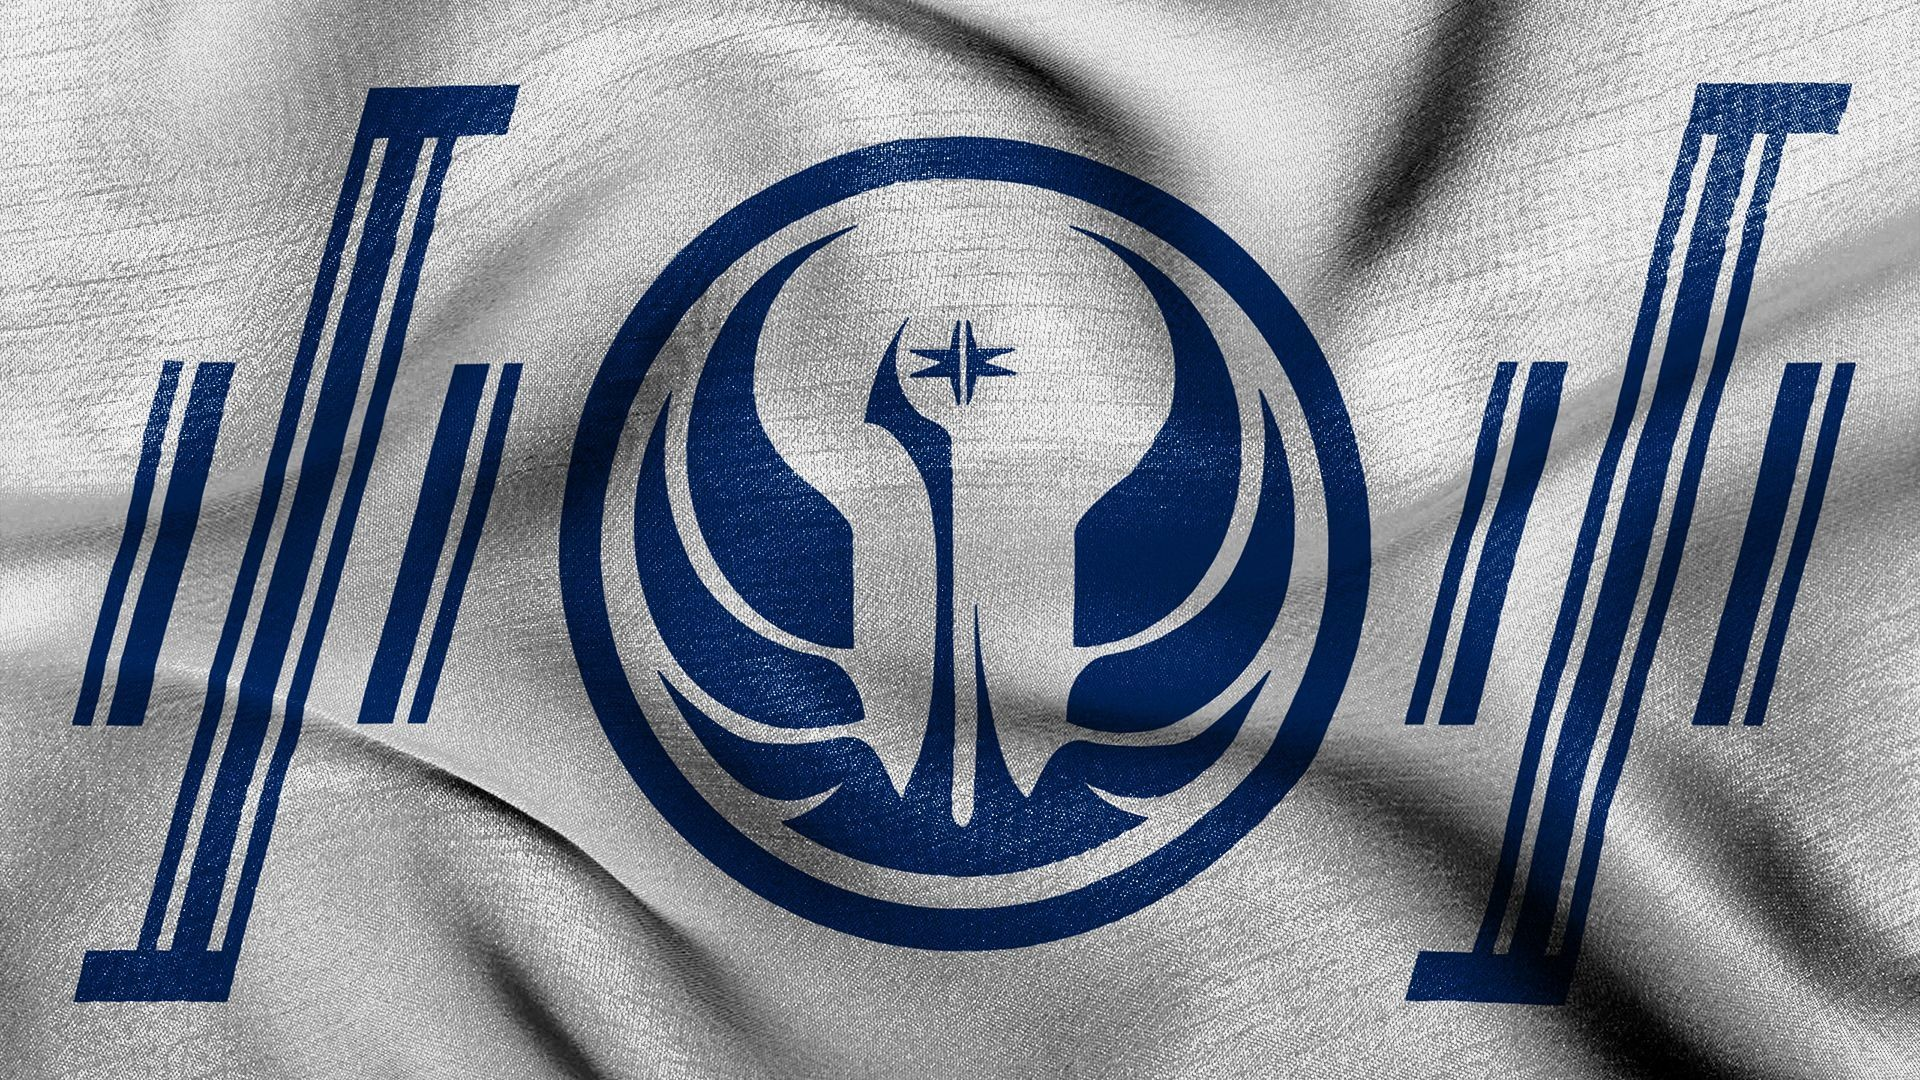 1920x1080 SWTOR Republic Flag Wallpaper by KobyashyMaru on DeviantArt